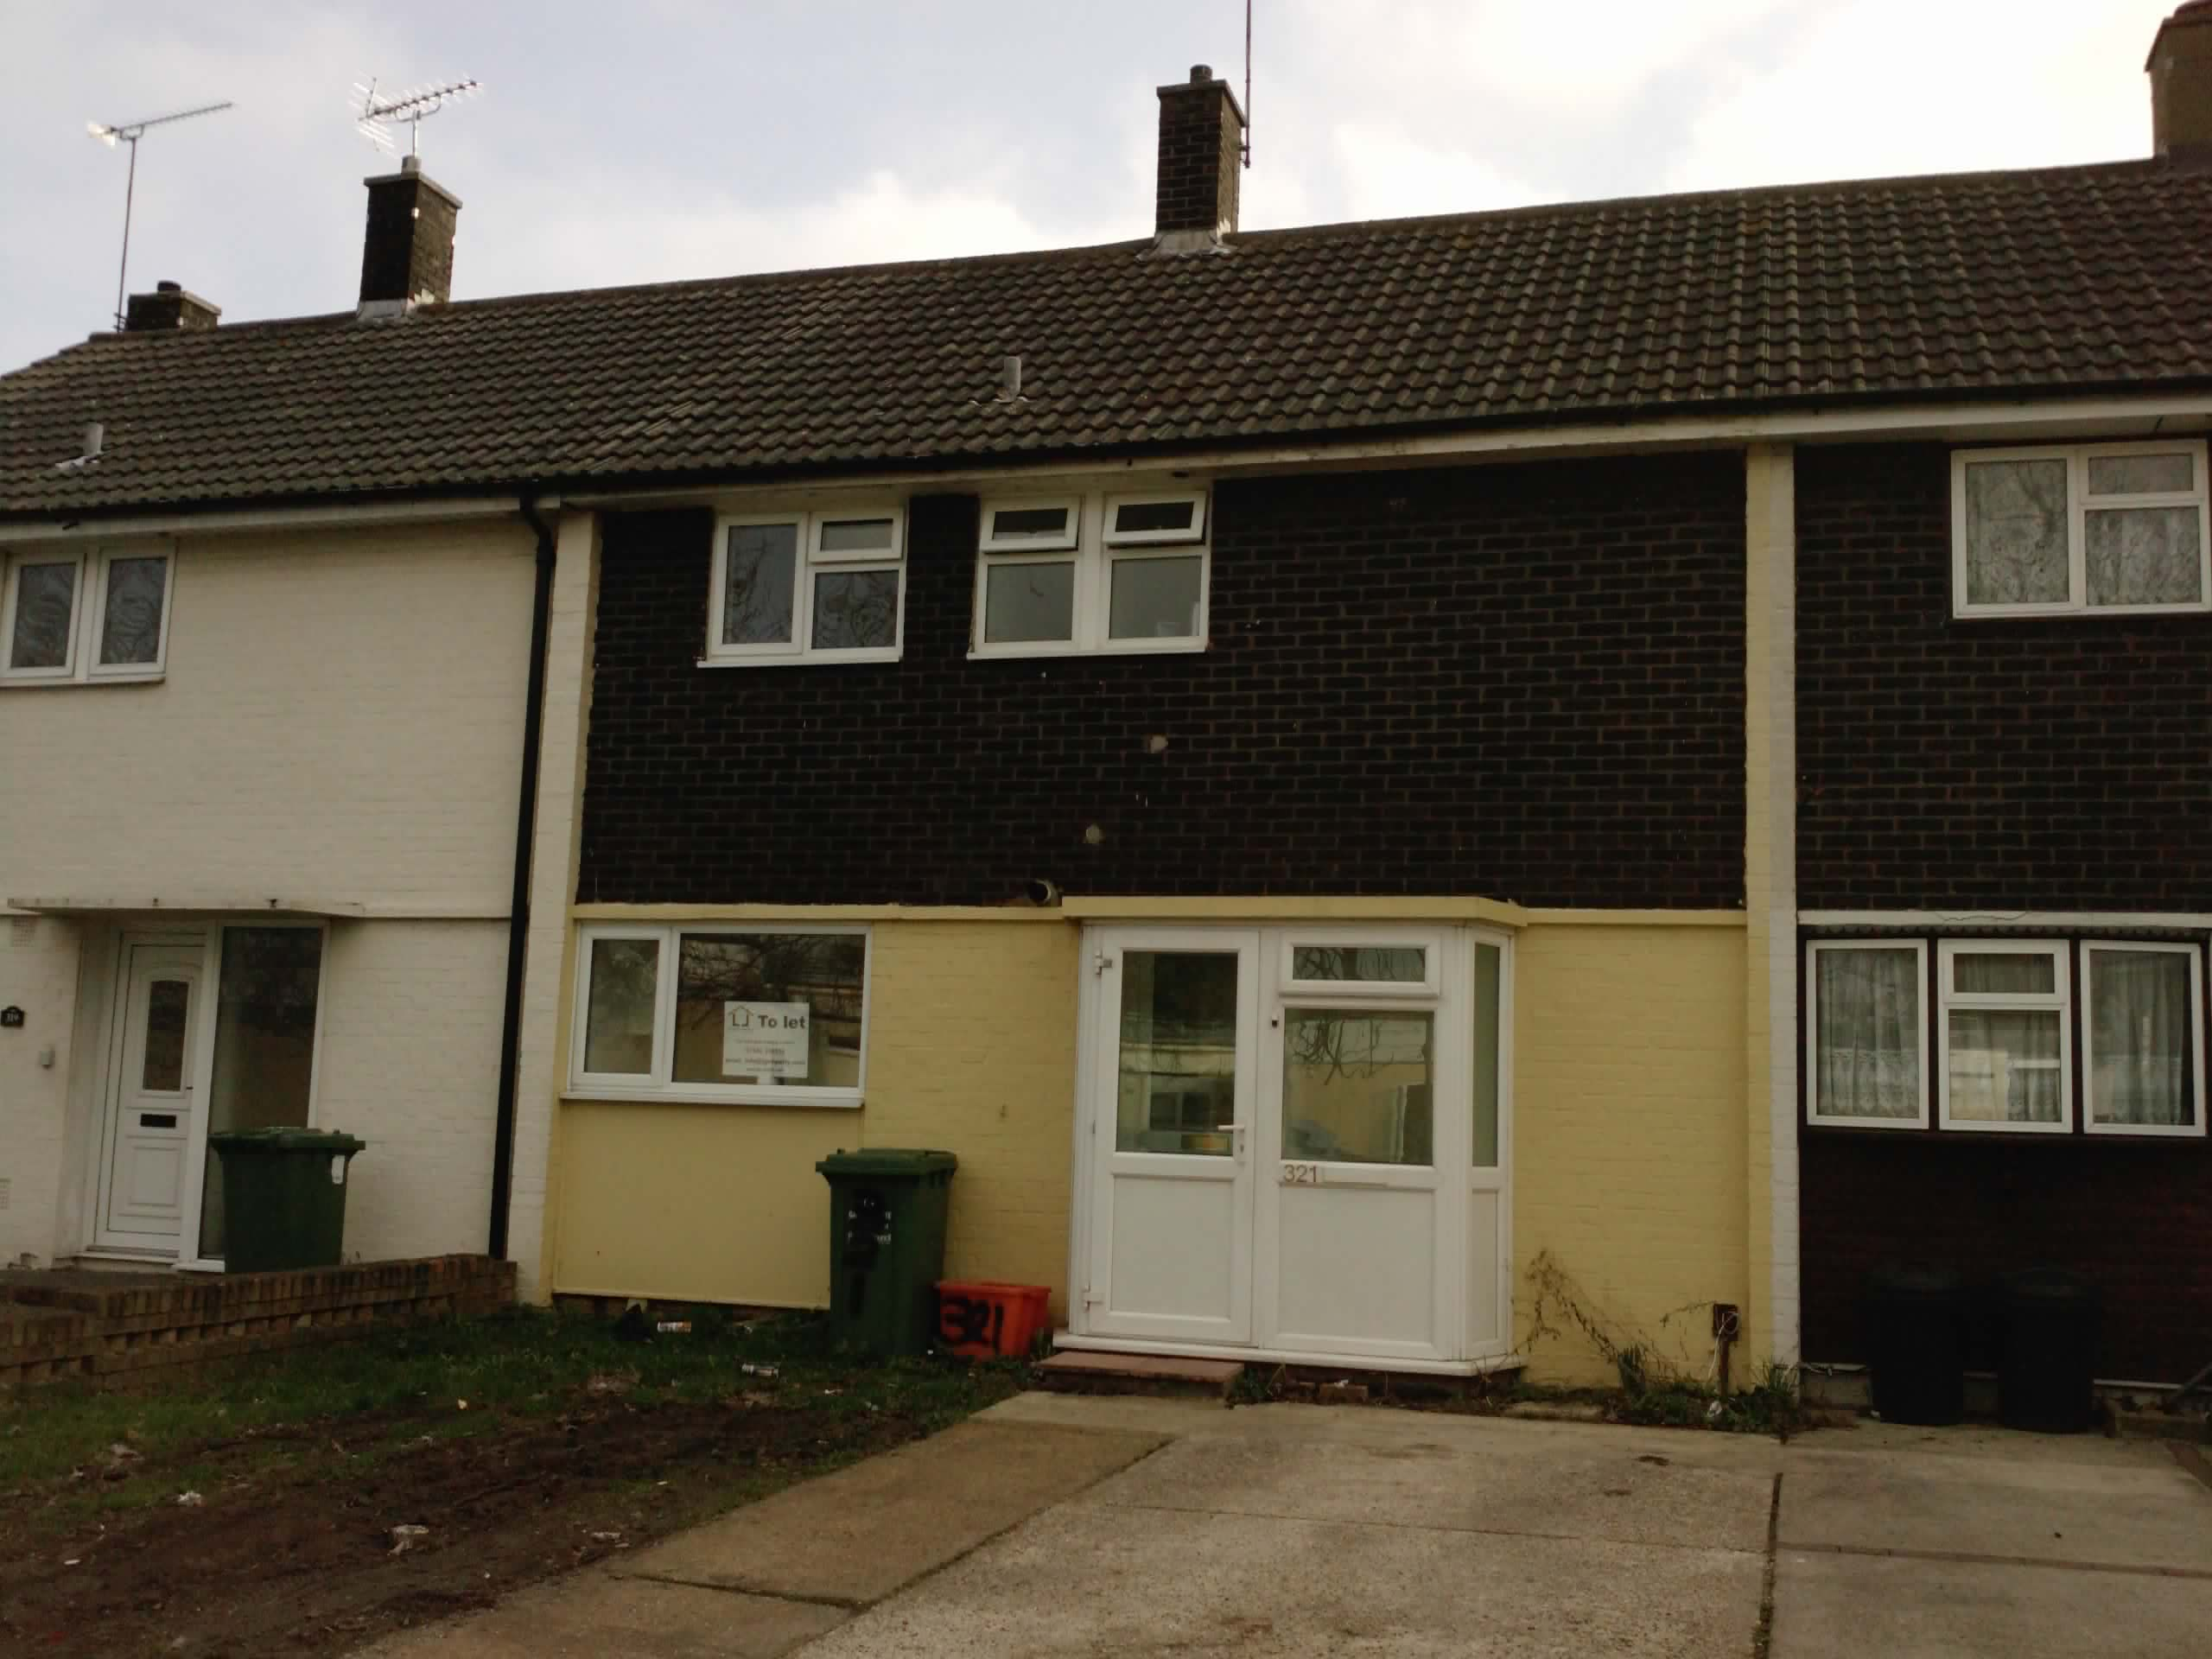 Attractive 3 Bedroom Unfurnished House To Rent On Whitmore Way, Basildon, SS14 By Private  Landlord